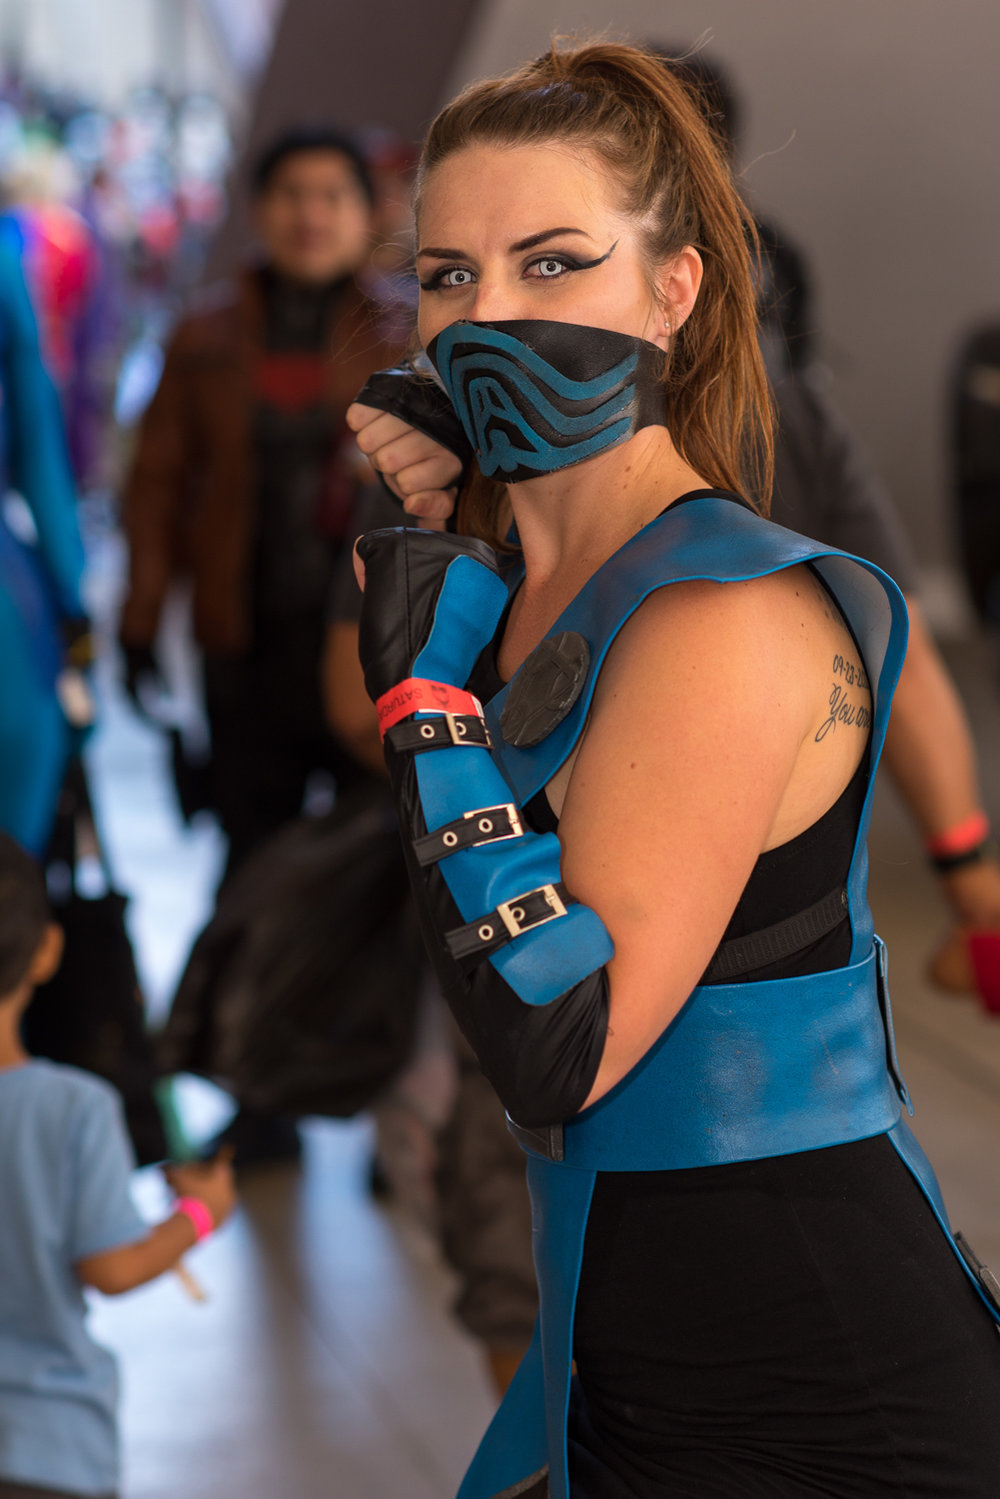 2016_September_17-longbeach_comic_con-28291.jpg